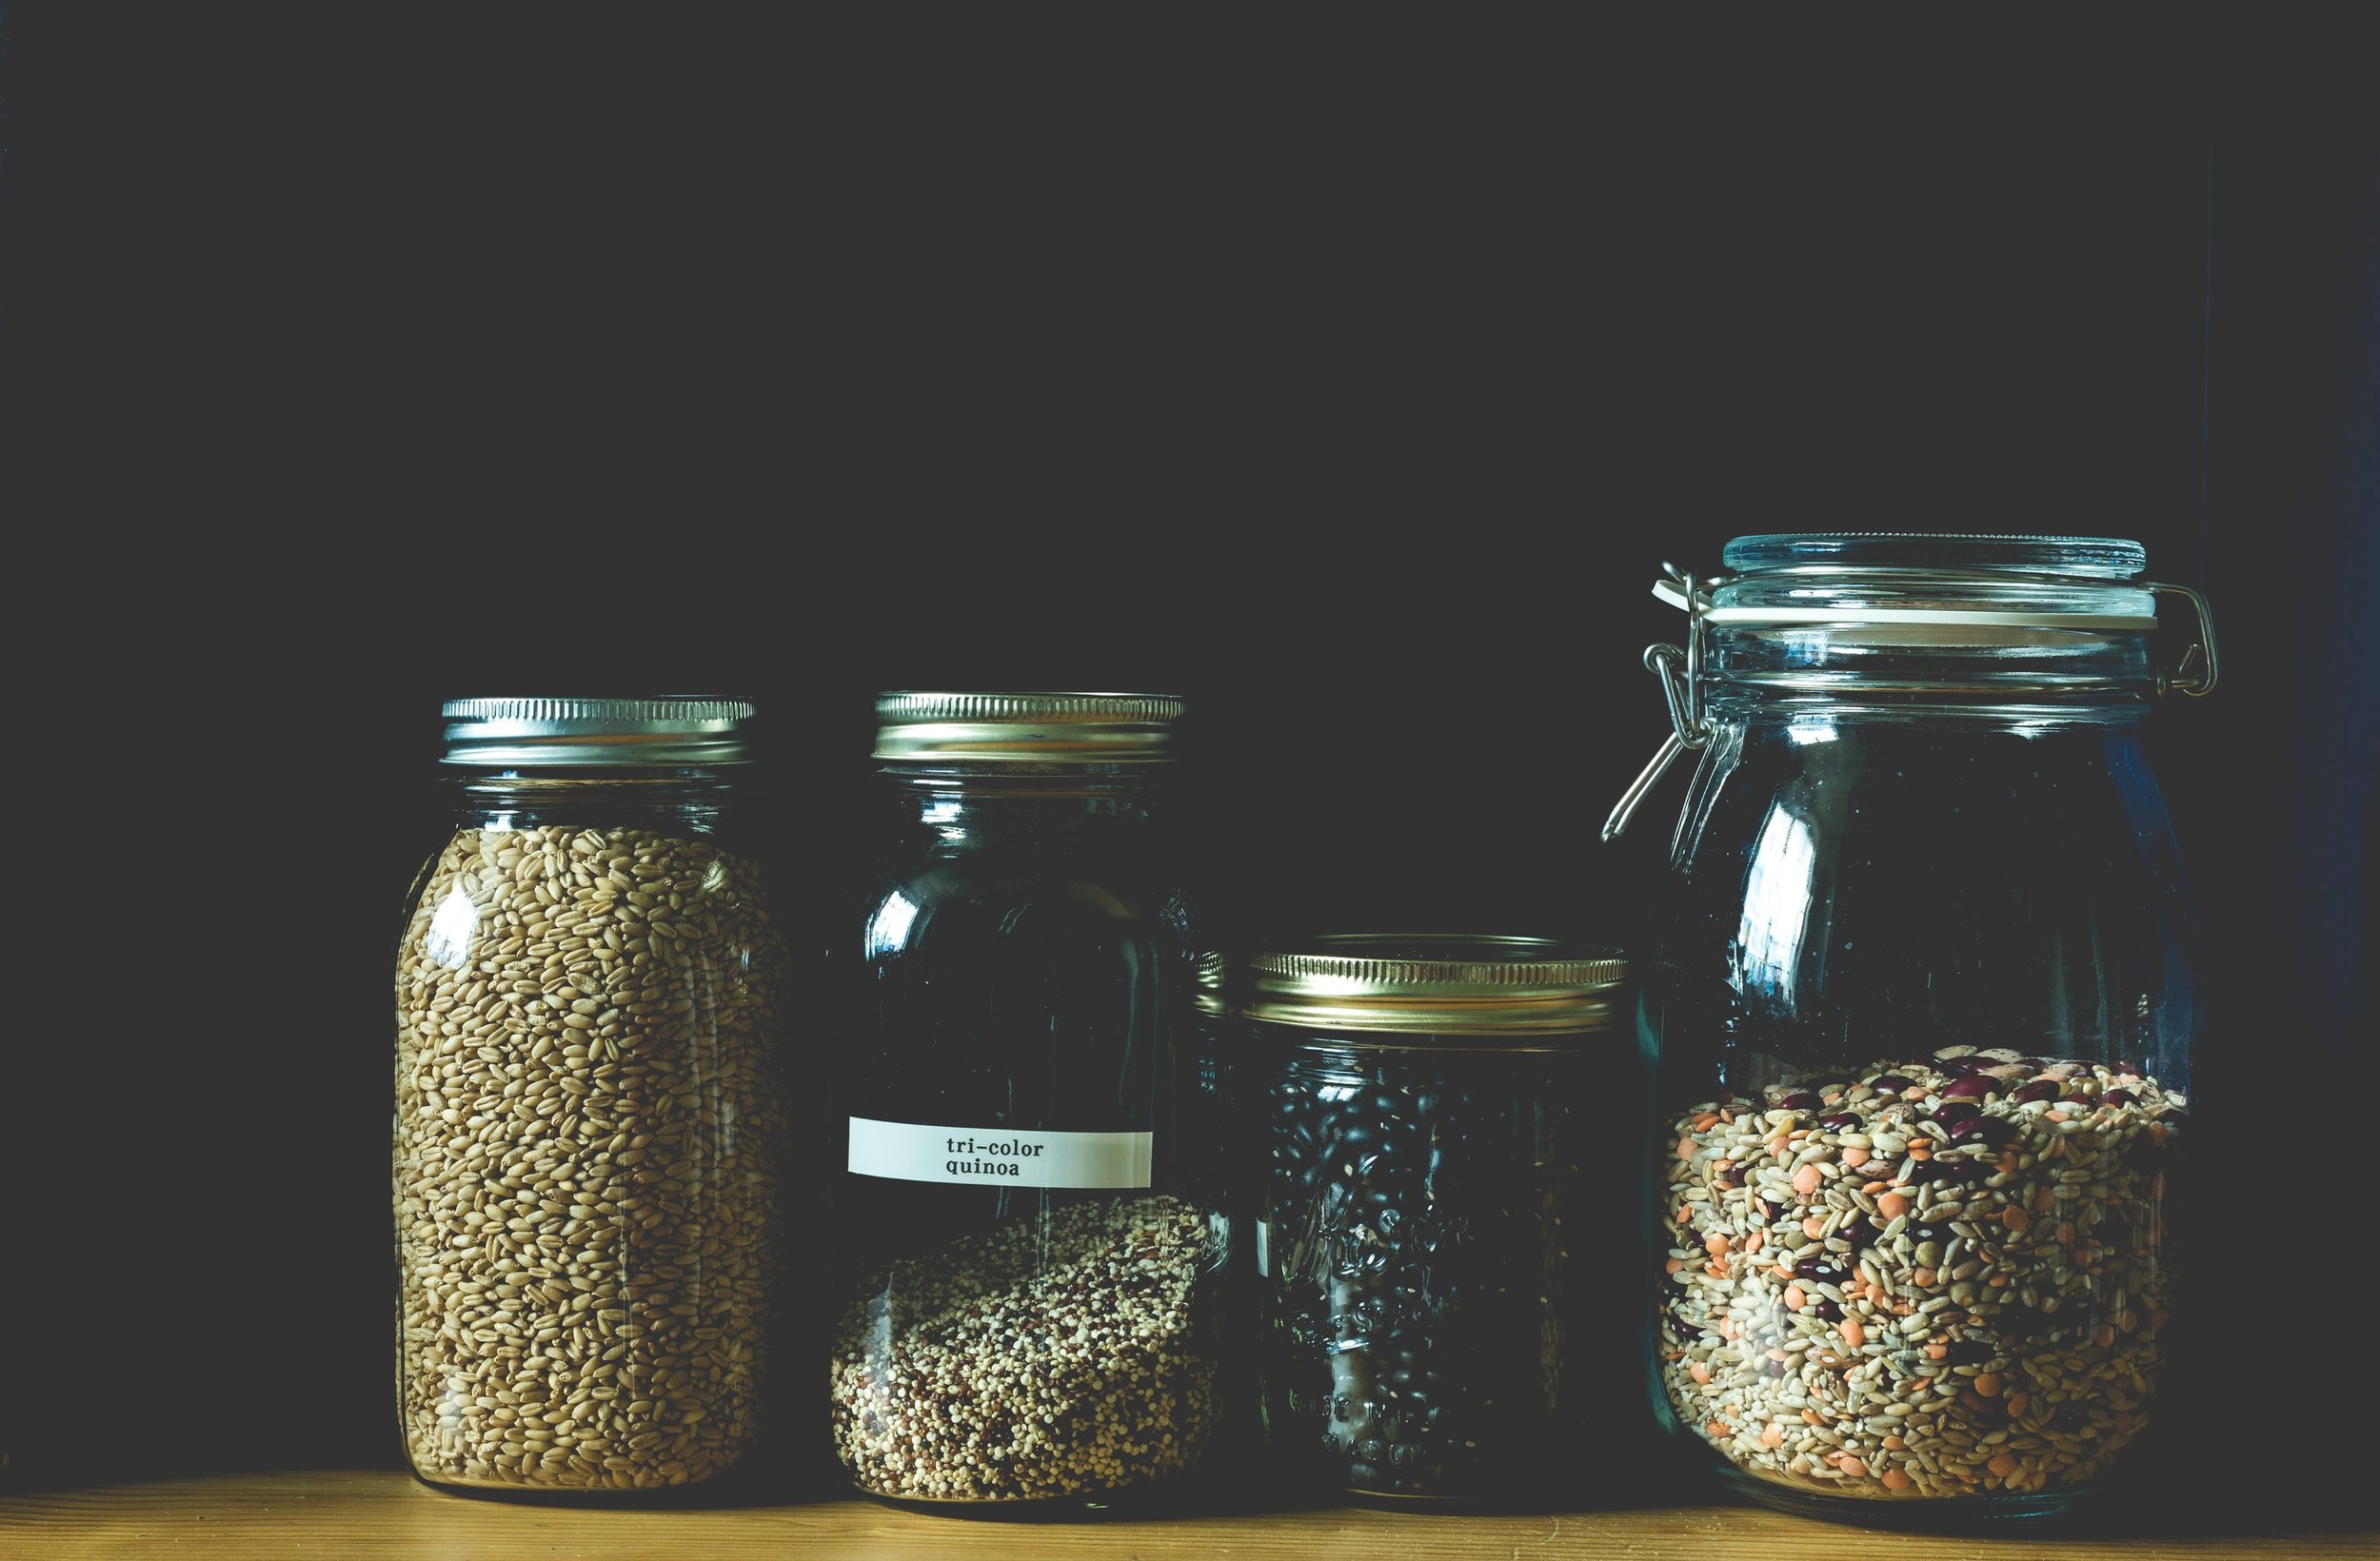 Mason jars offer great storage for bulk items - they make your food look pretty too.